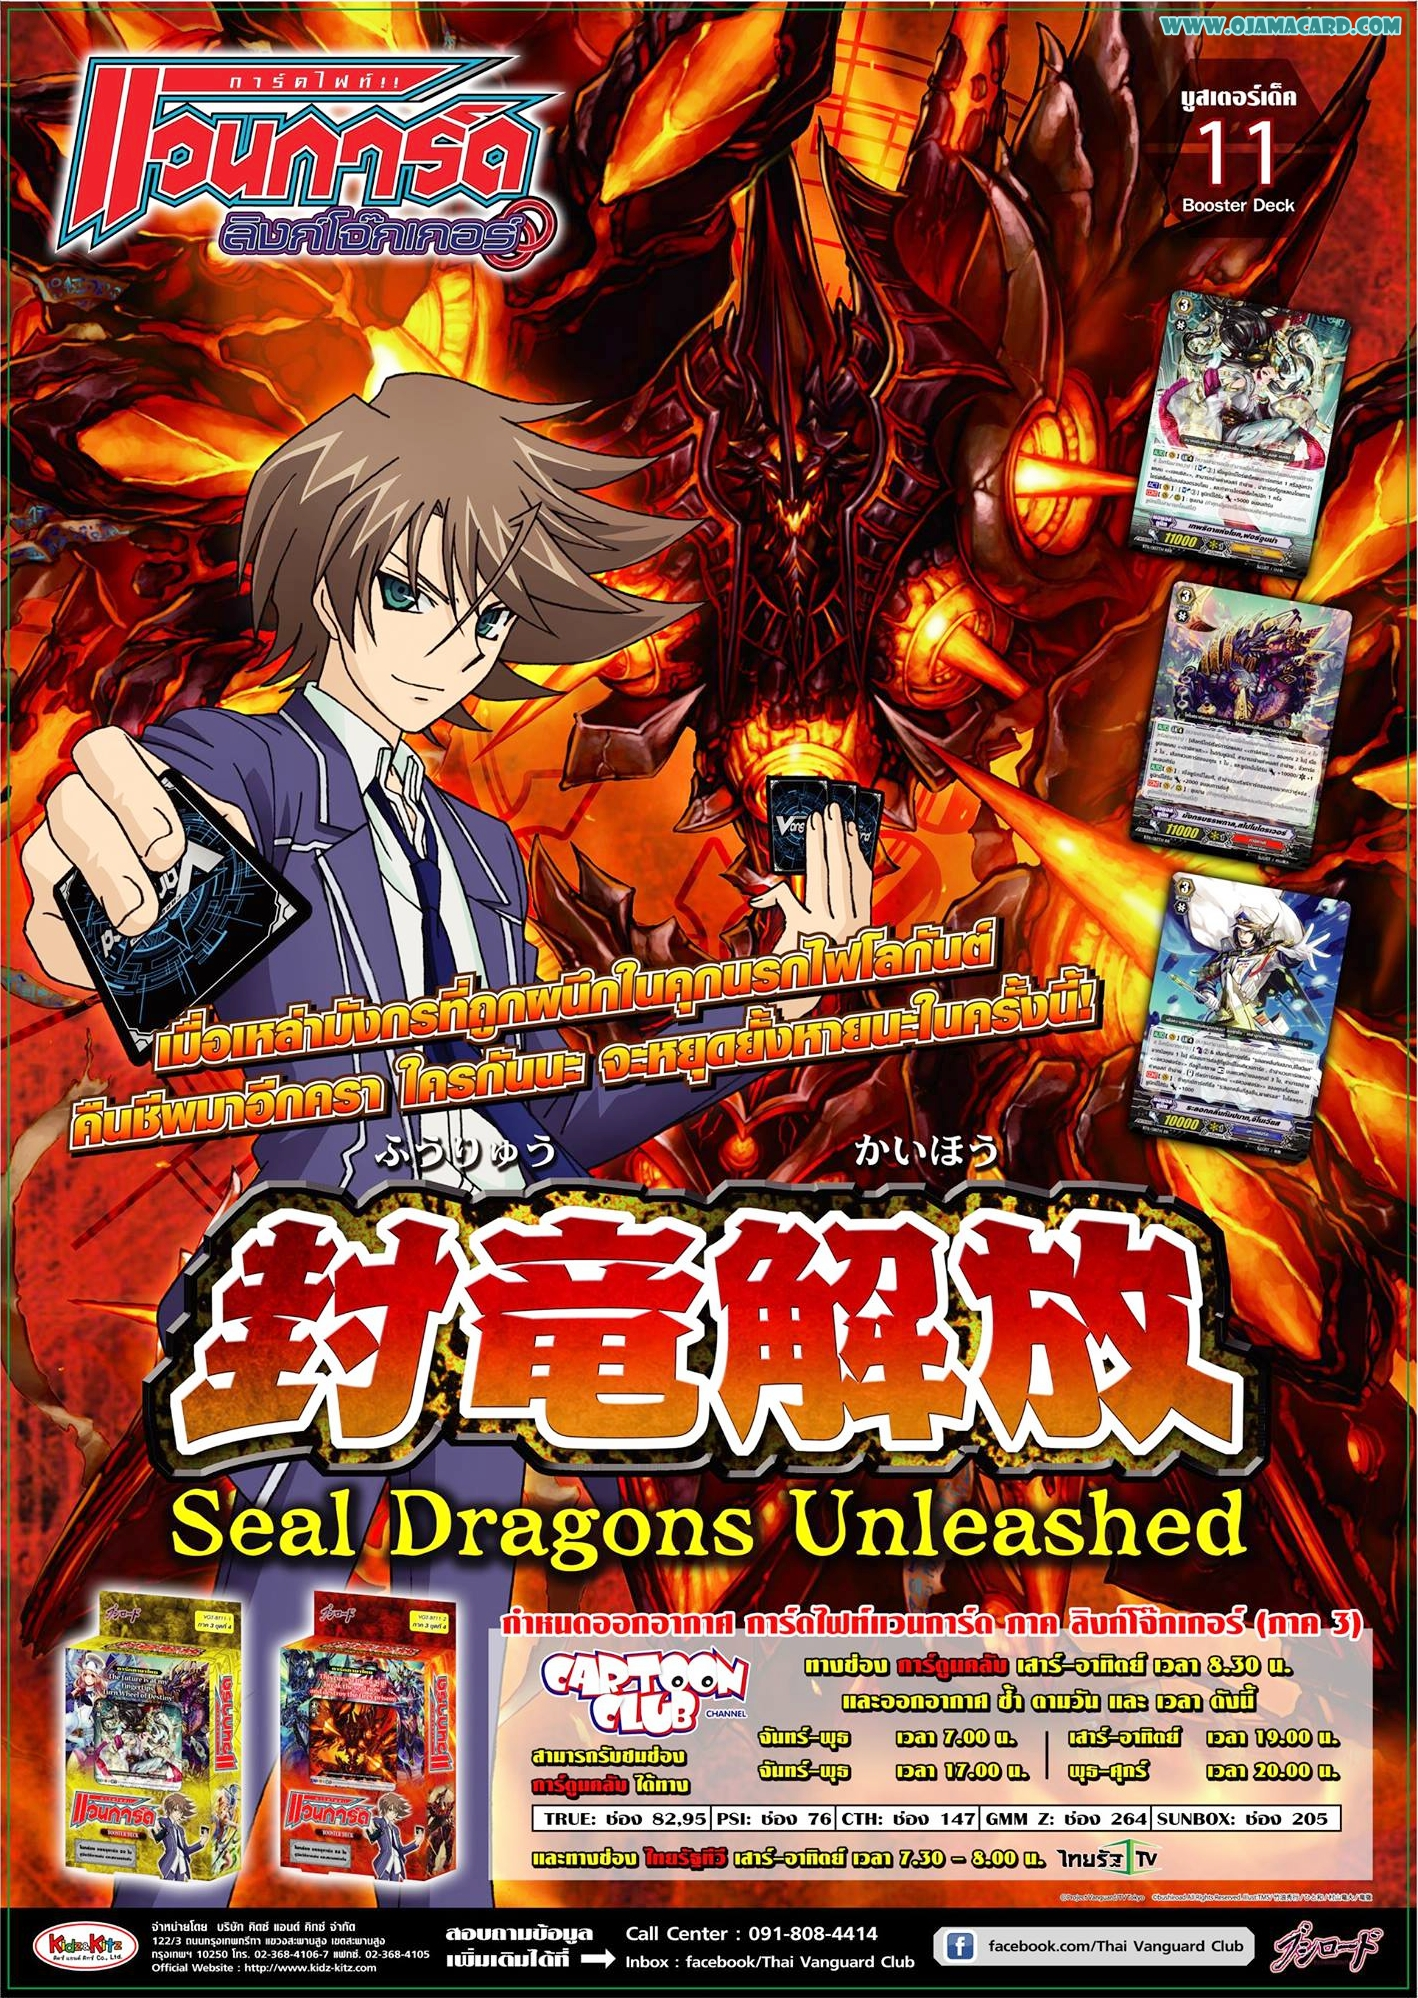 Booster Deck 11 %3A Seal Dragons Unleashed (VGT-BT11)